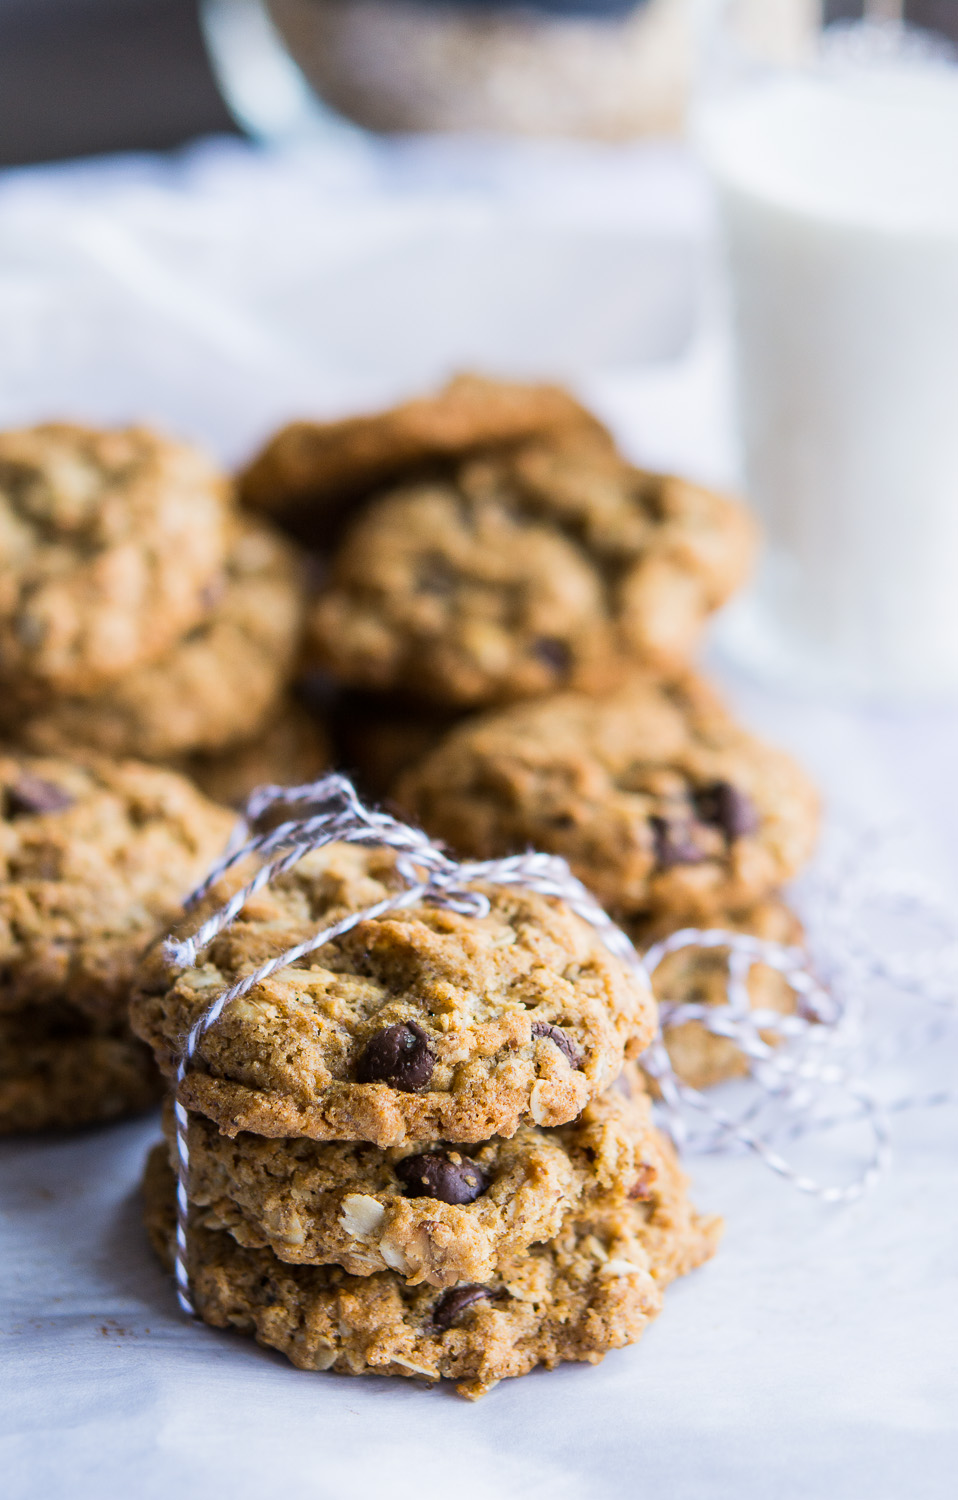 Oatmeal Milled Flaxseed Chocolate Chip Cookies